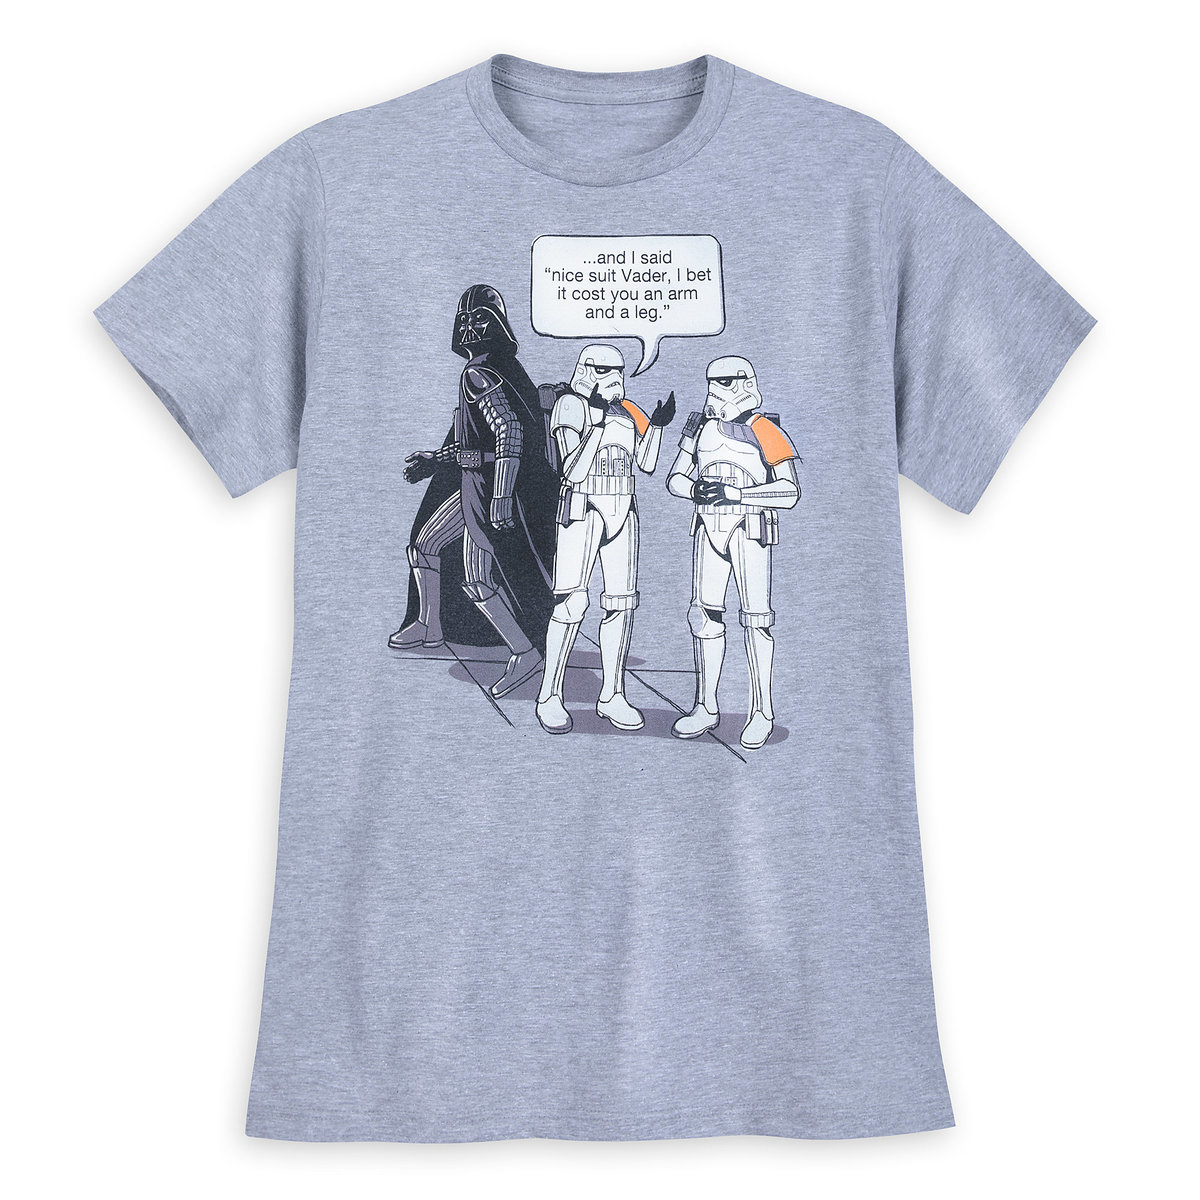 341717bd Product Image of Darth Vader and Stormtroopers T-Shirt for Men - Star Wars #